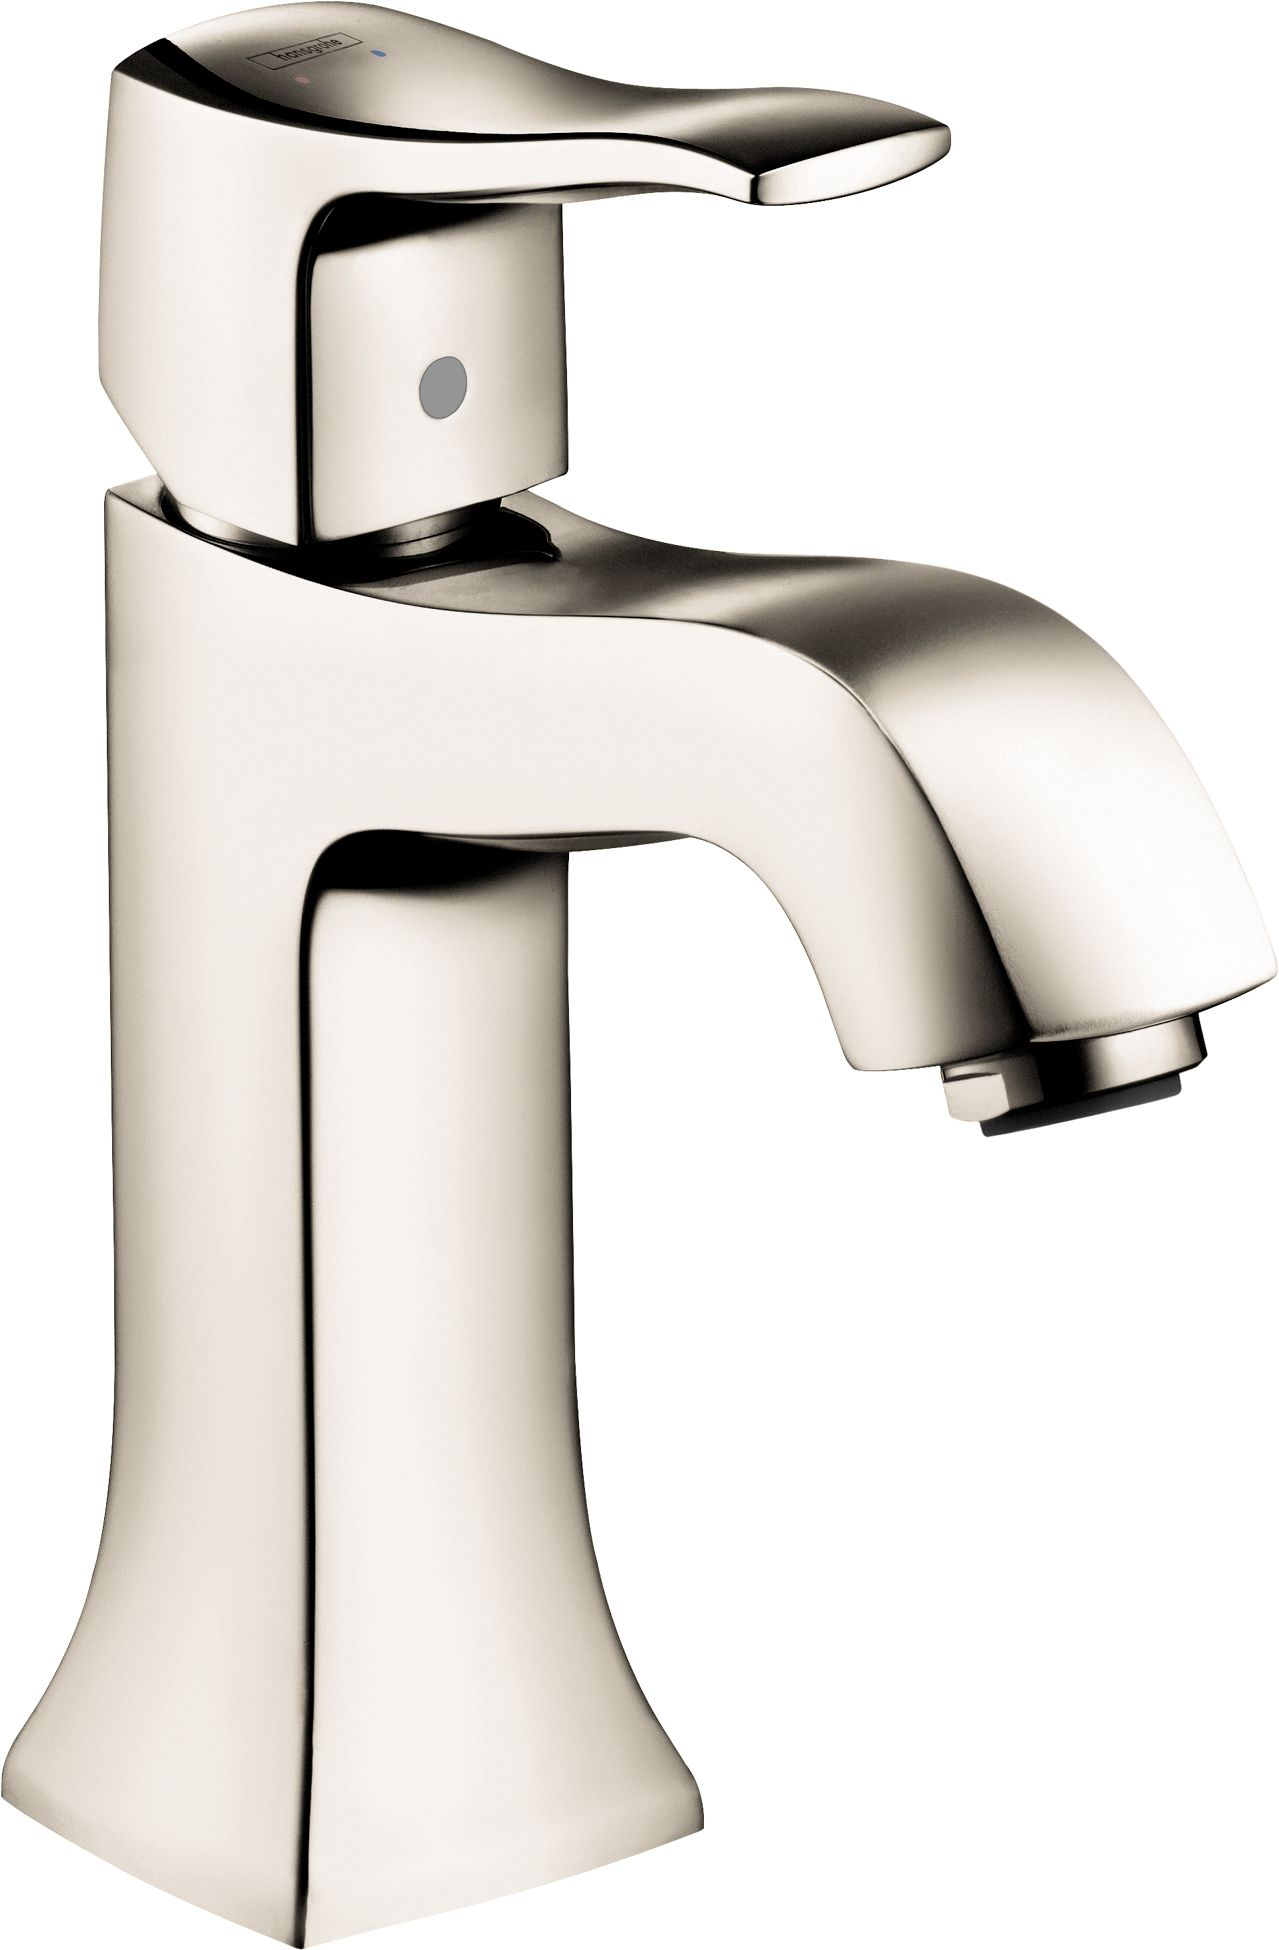 Hansgrohe 31075001 Chrome Metris C 1.2 Single Hole Bathroom Faucet ...